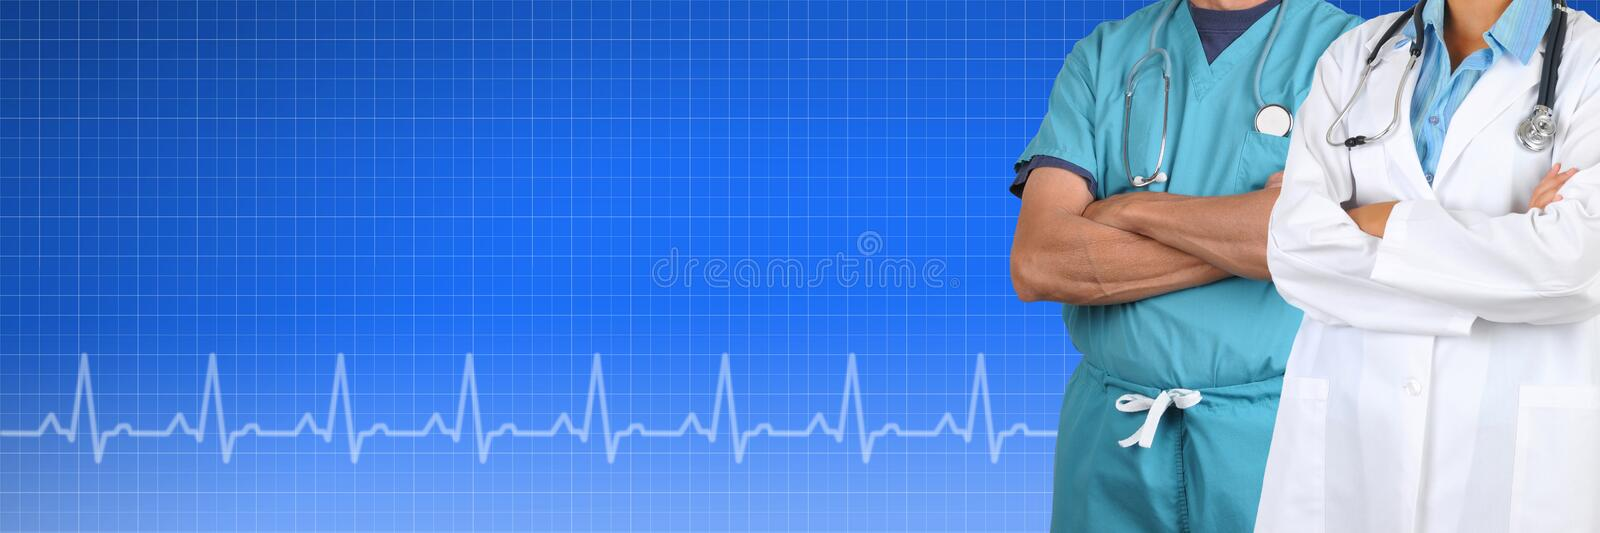 Two Doctor Medical Banner. Tow Doctors, male and female, over a Health Care background with EKG graph. Suitable for medical web sites with room for your copy stock photo